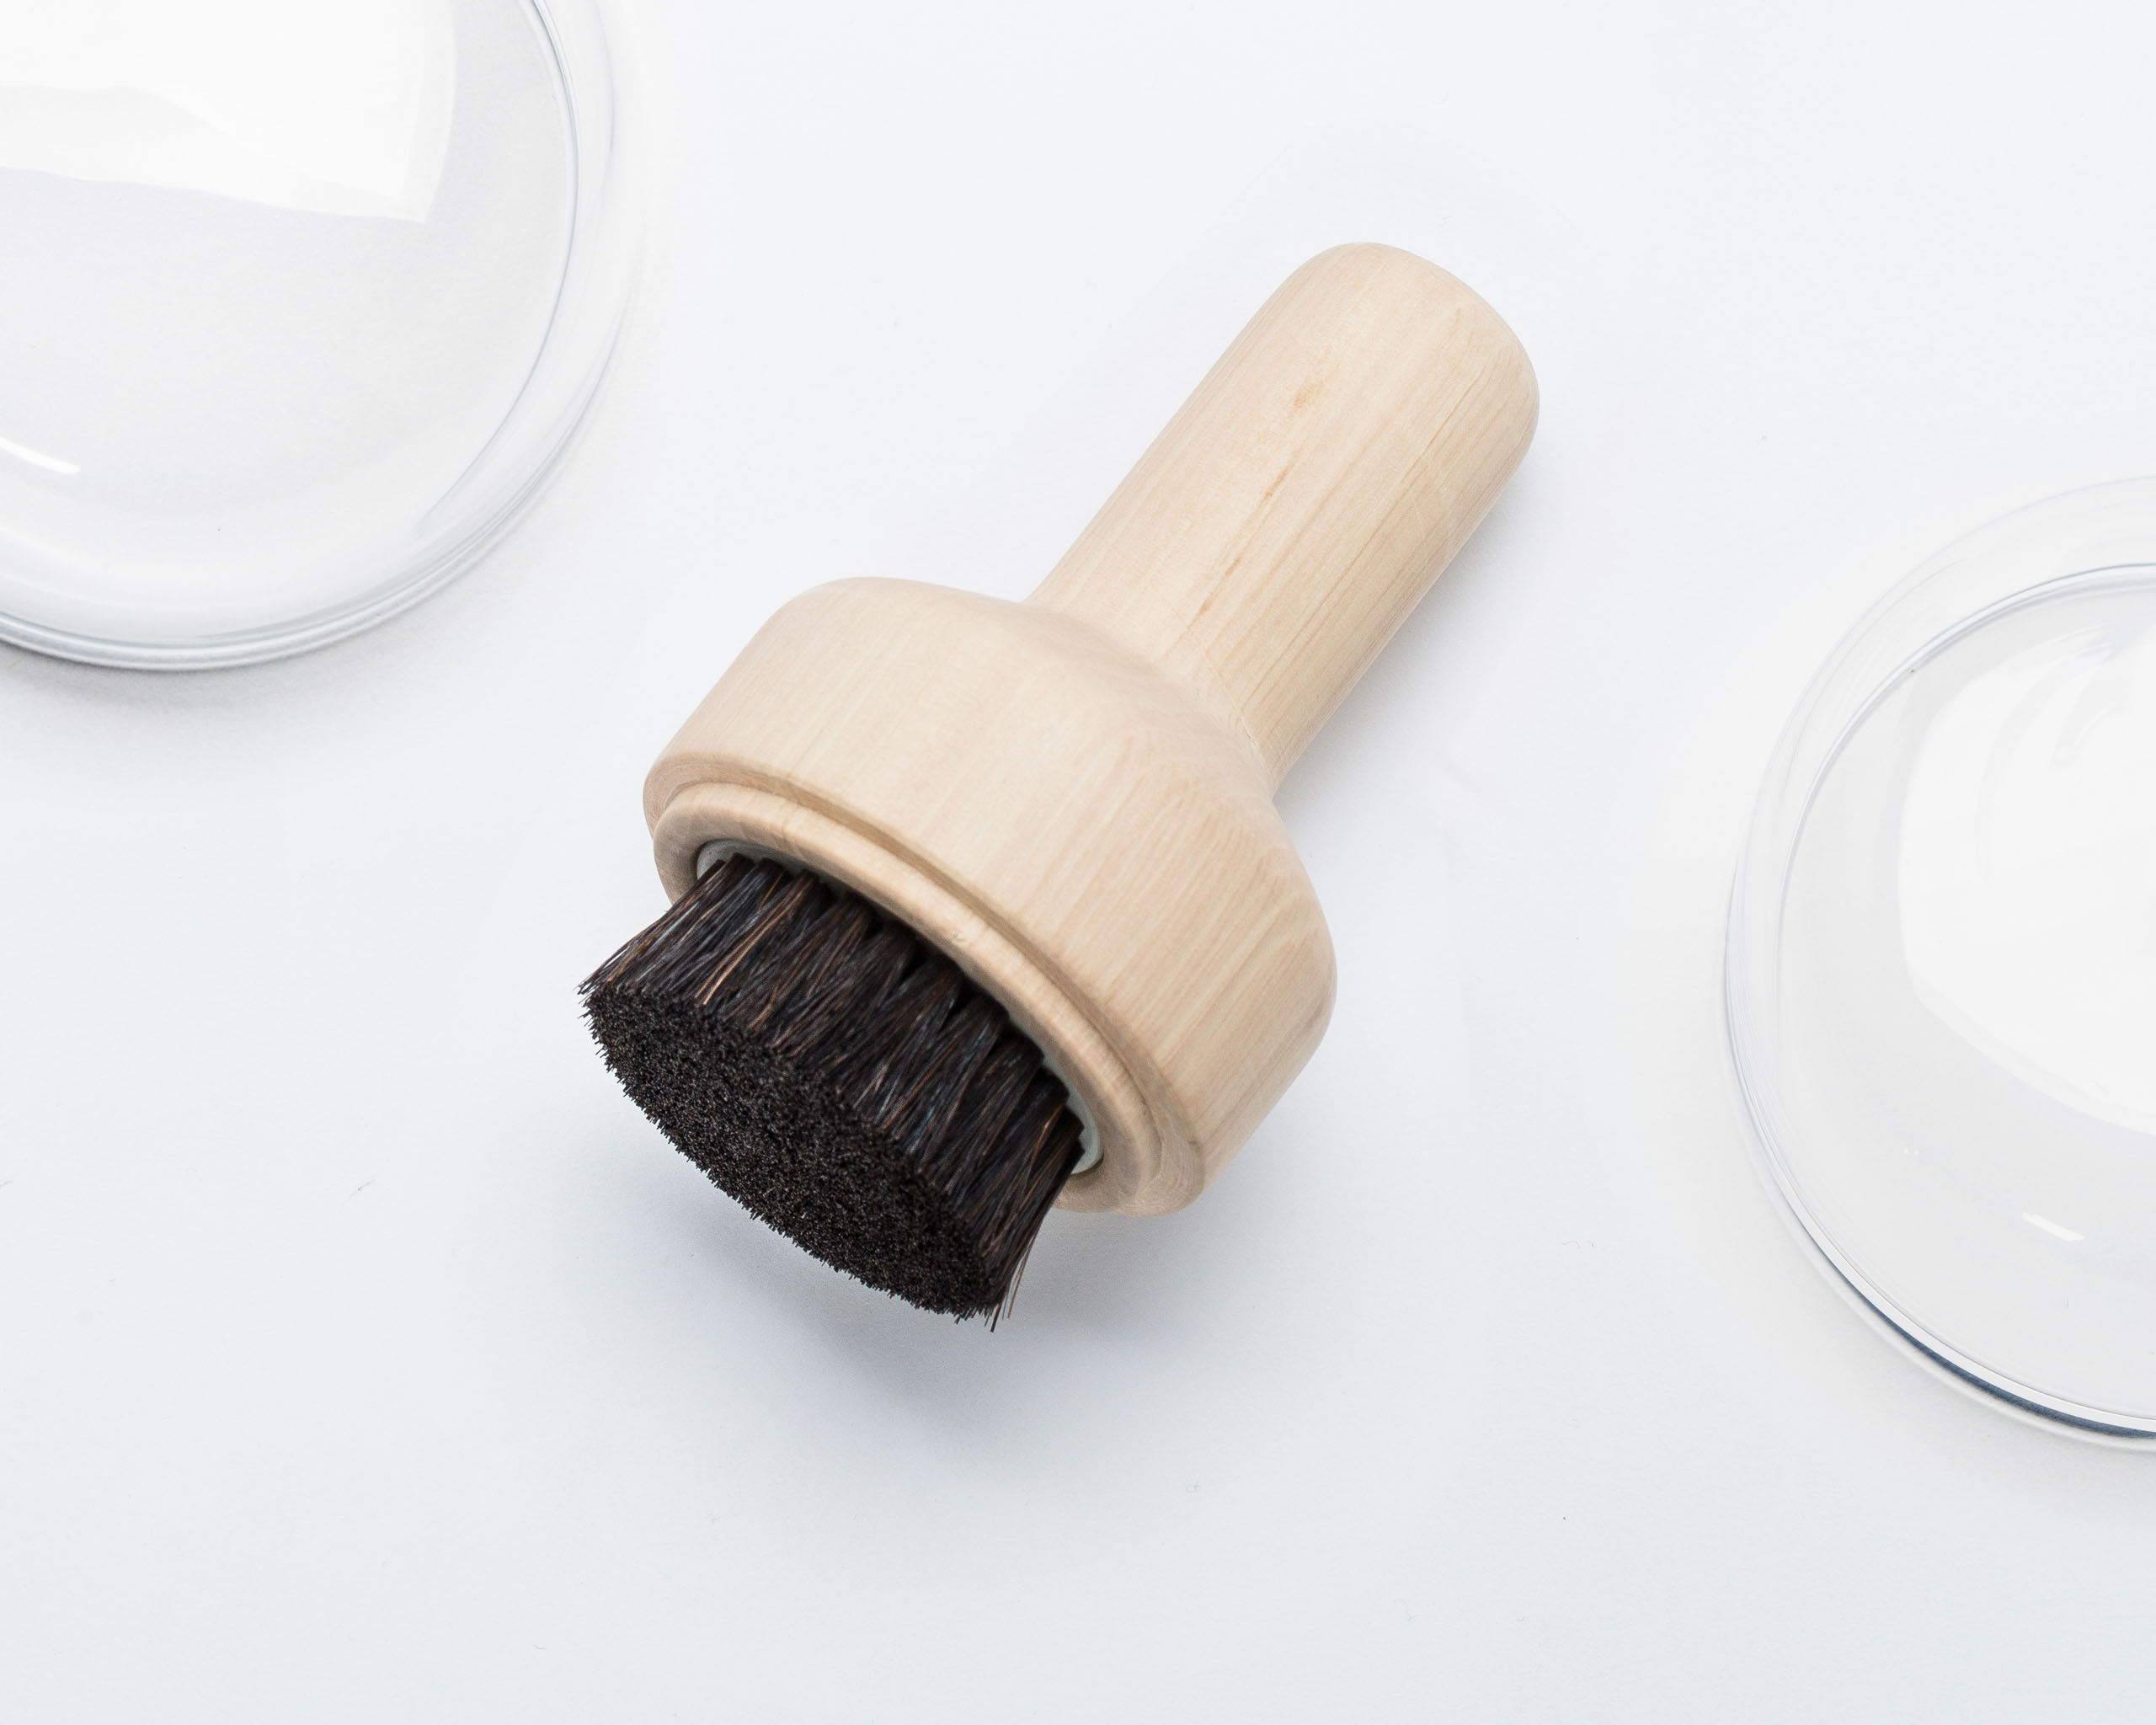 A shoe brush made of wood and natural bristles with an extended handle.